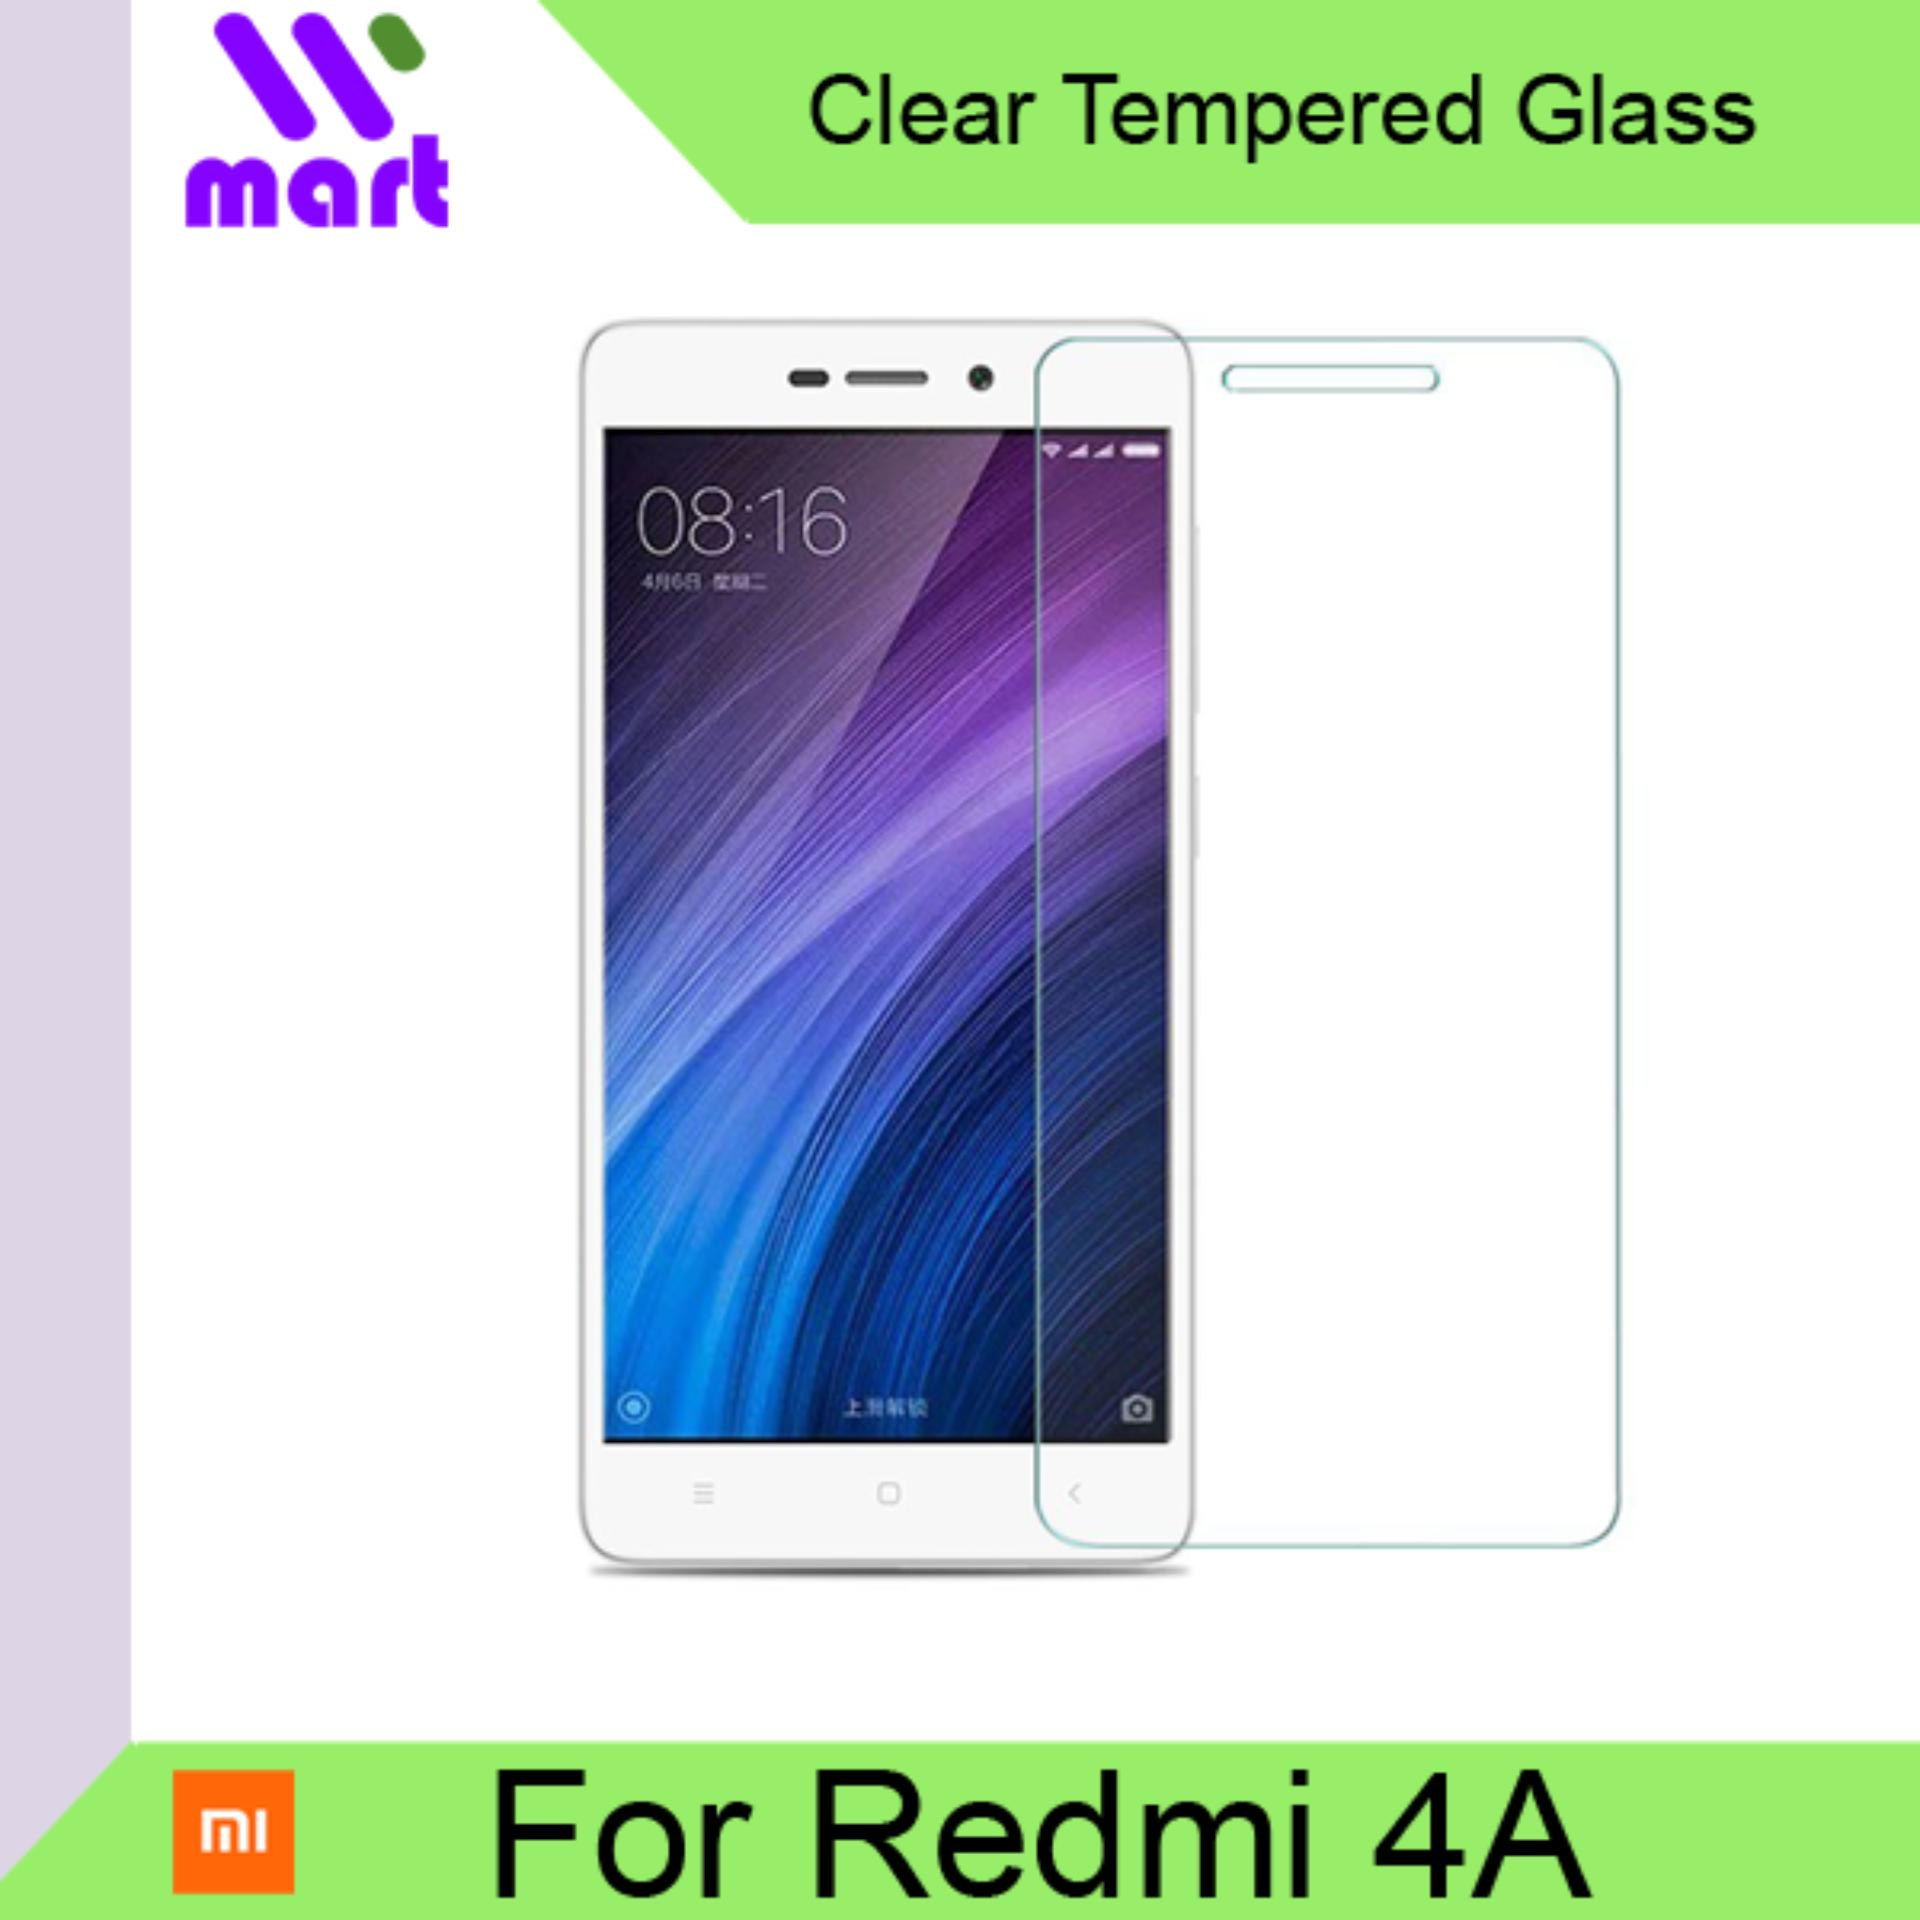 Tempered Glass Screen Protector (Clear) For Xiaomi Redmi 4A